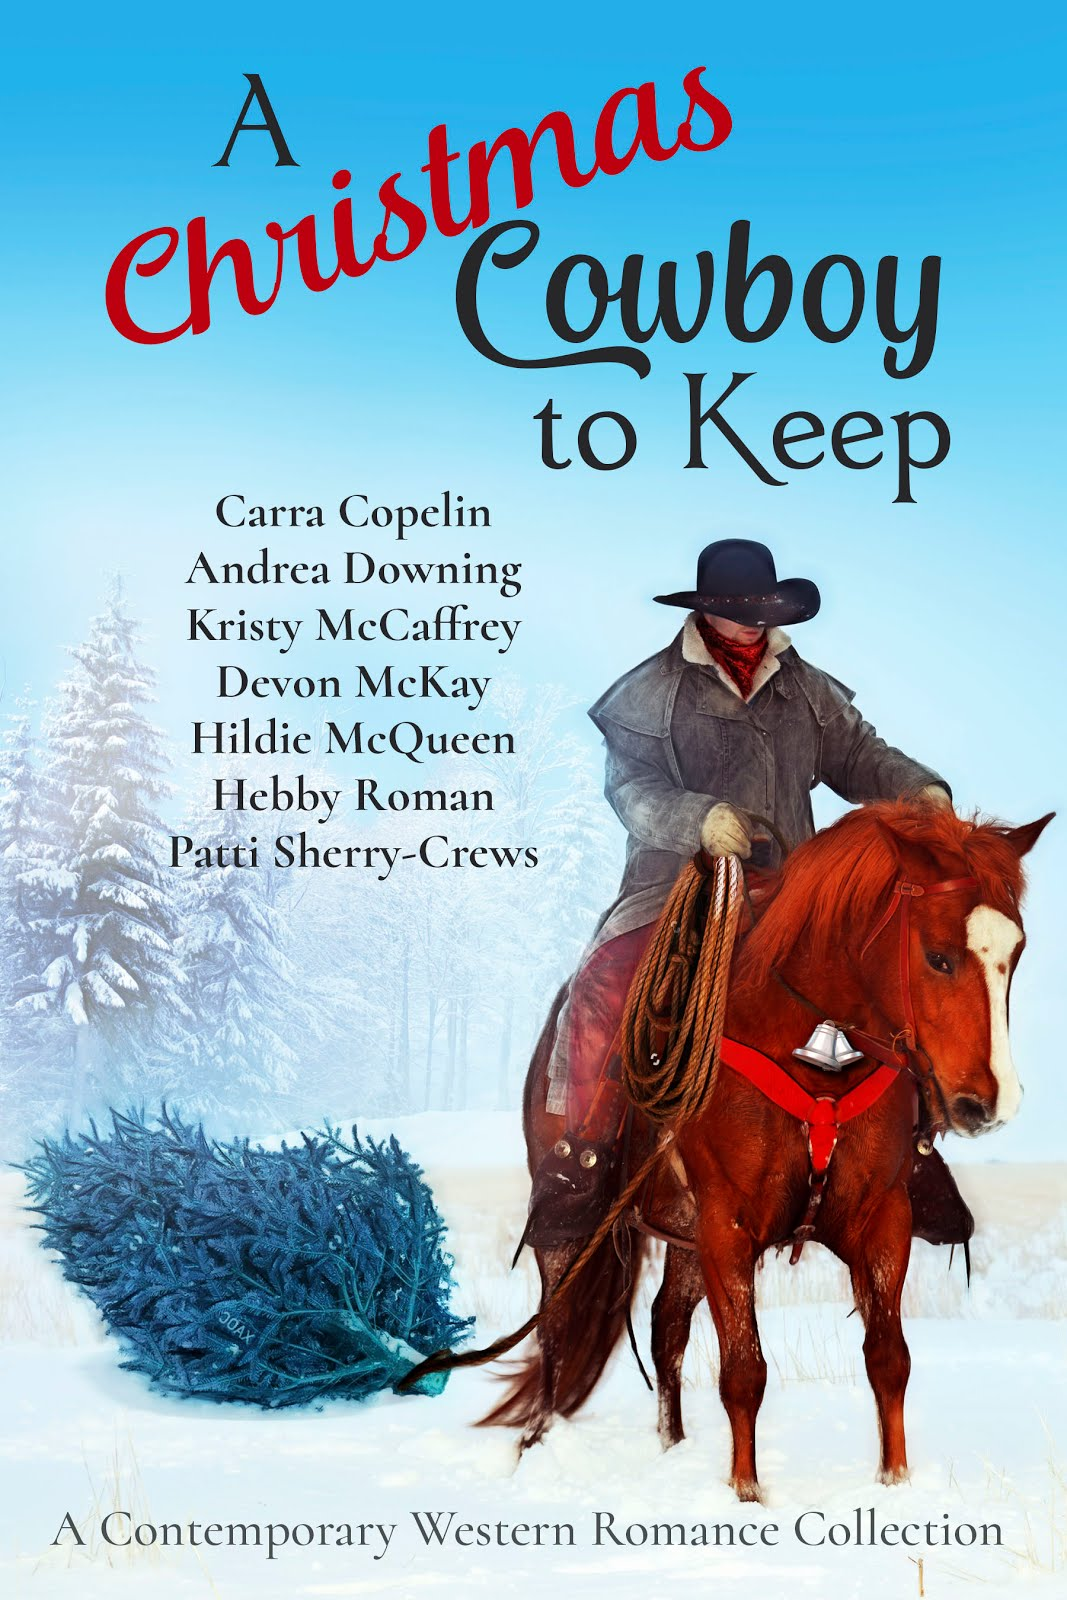 Contemporary Western Romance Stories